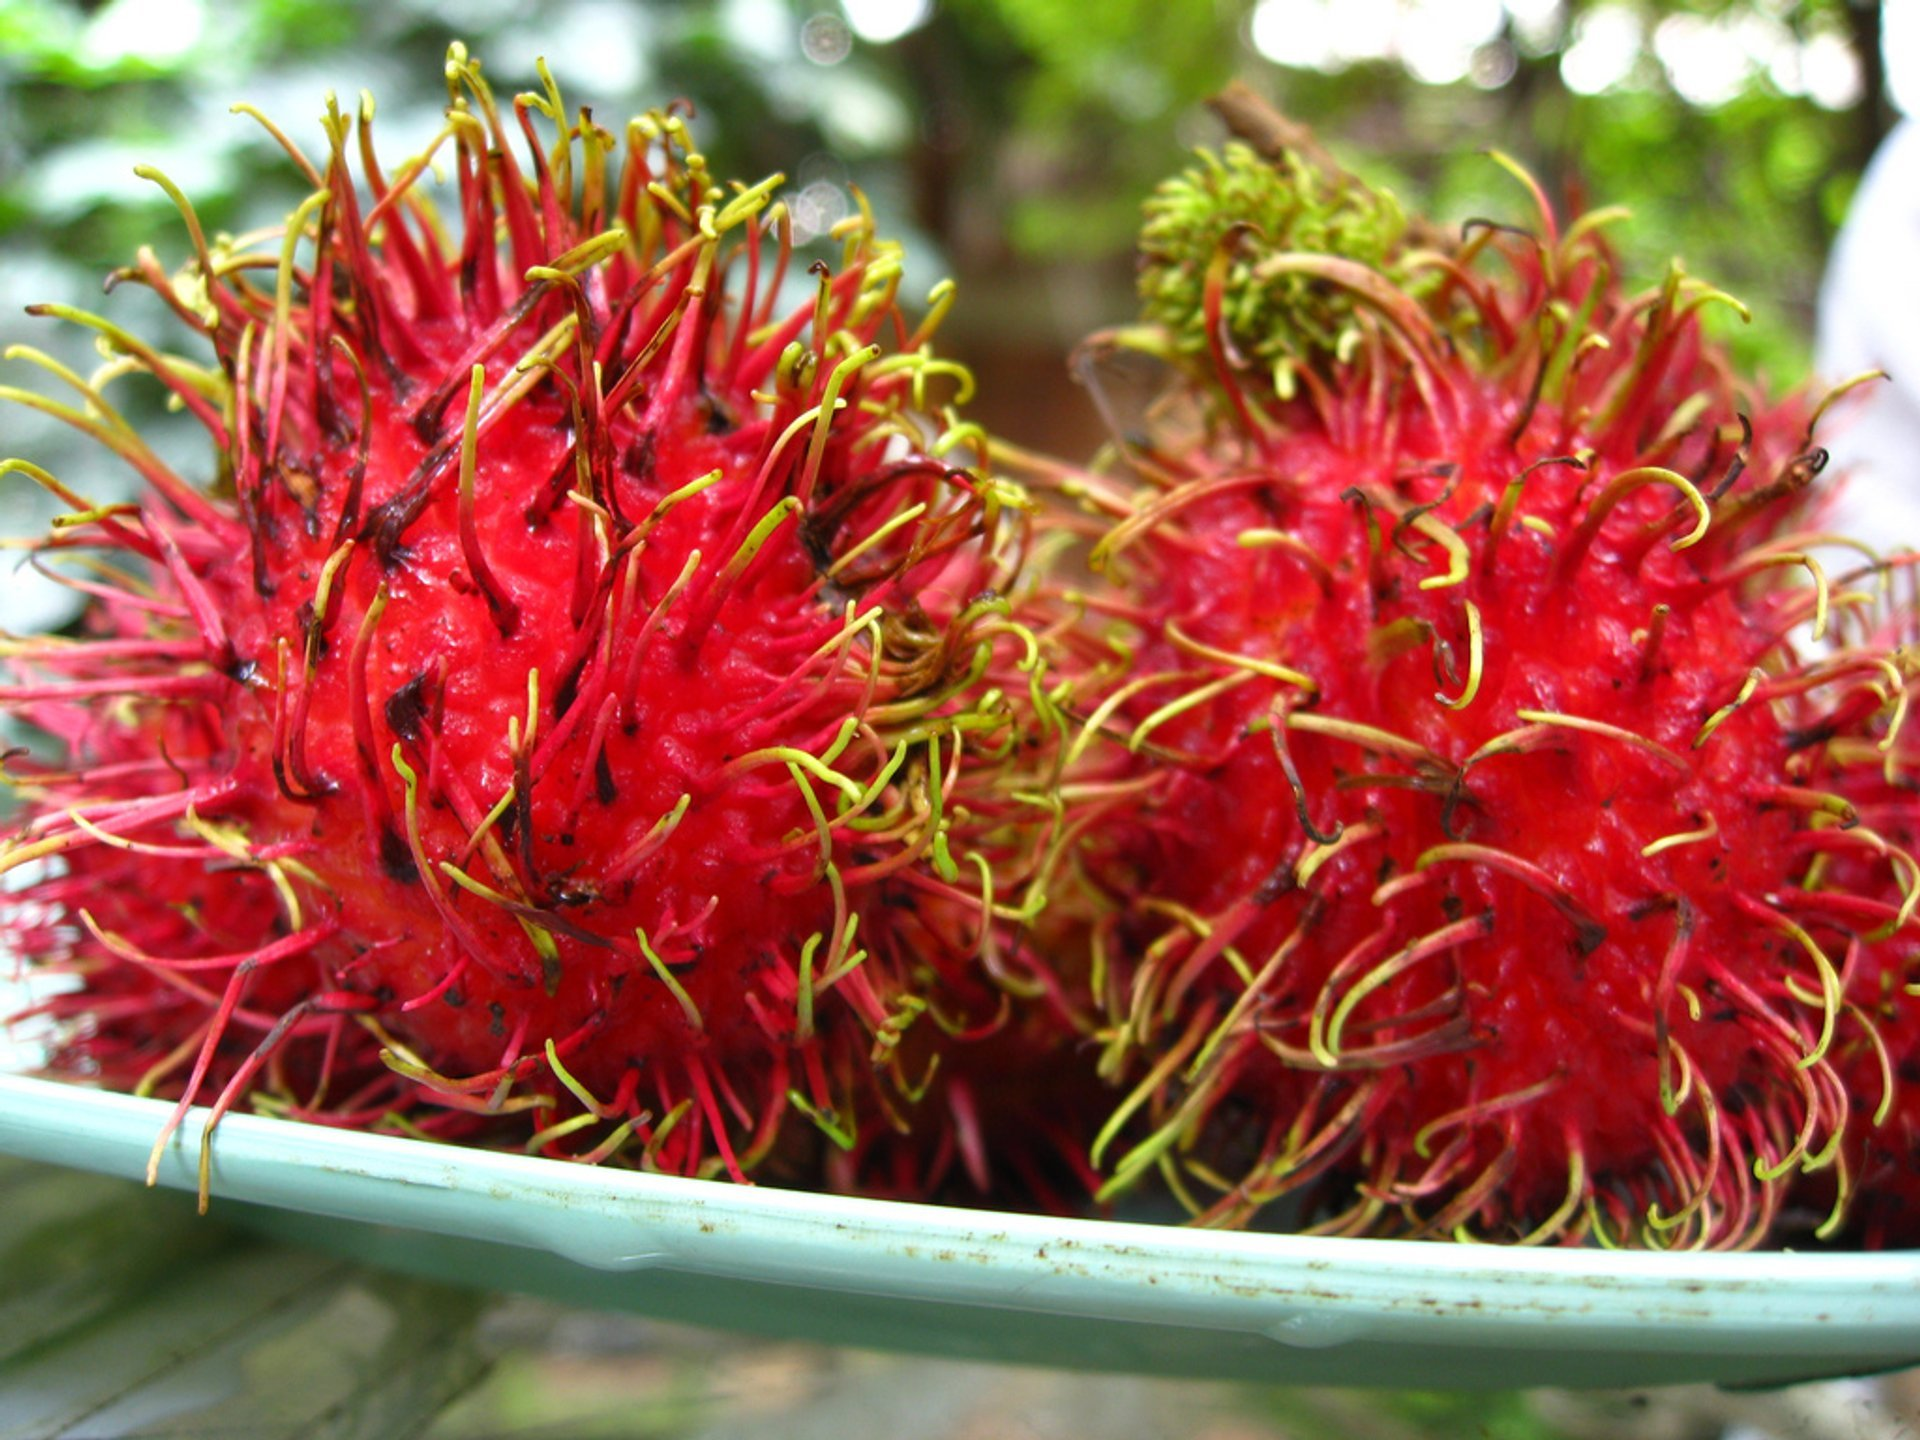 Rambutan Season in Thailand 2019 - Best Time